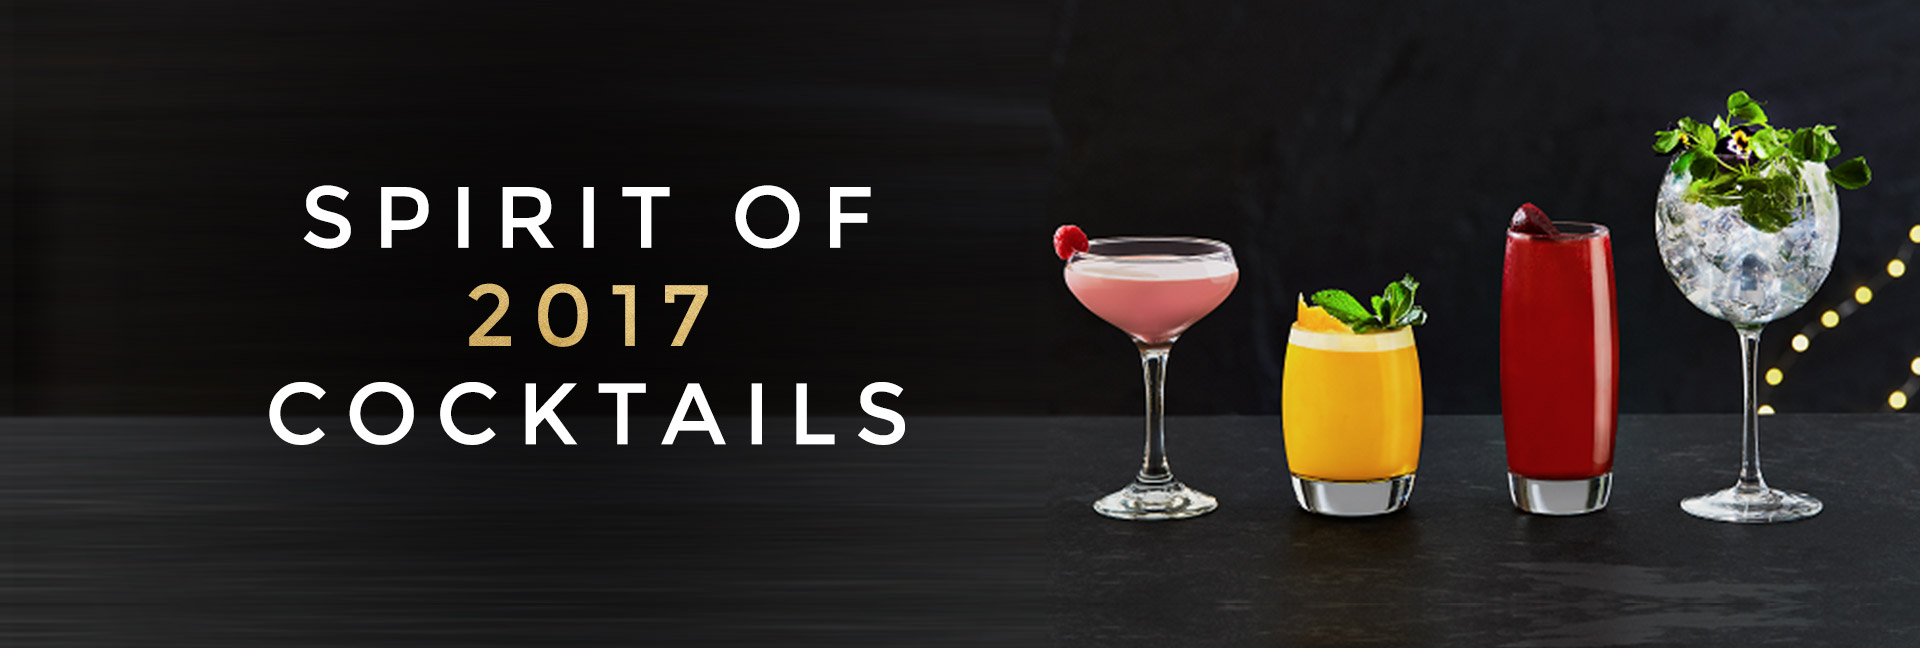 Spirit of 2017 cocktails at All Bar One York